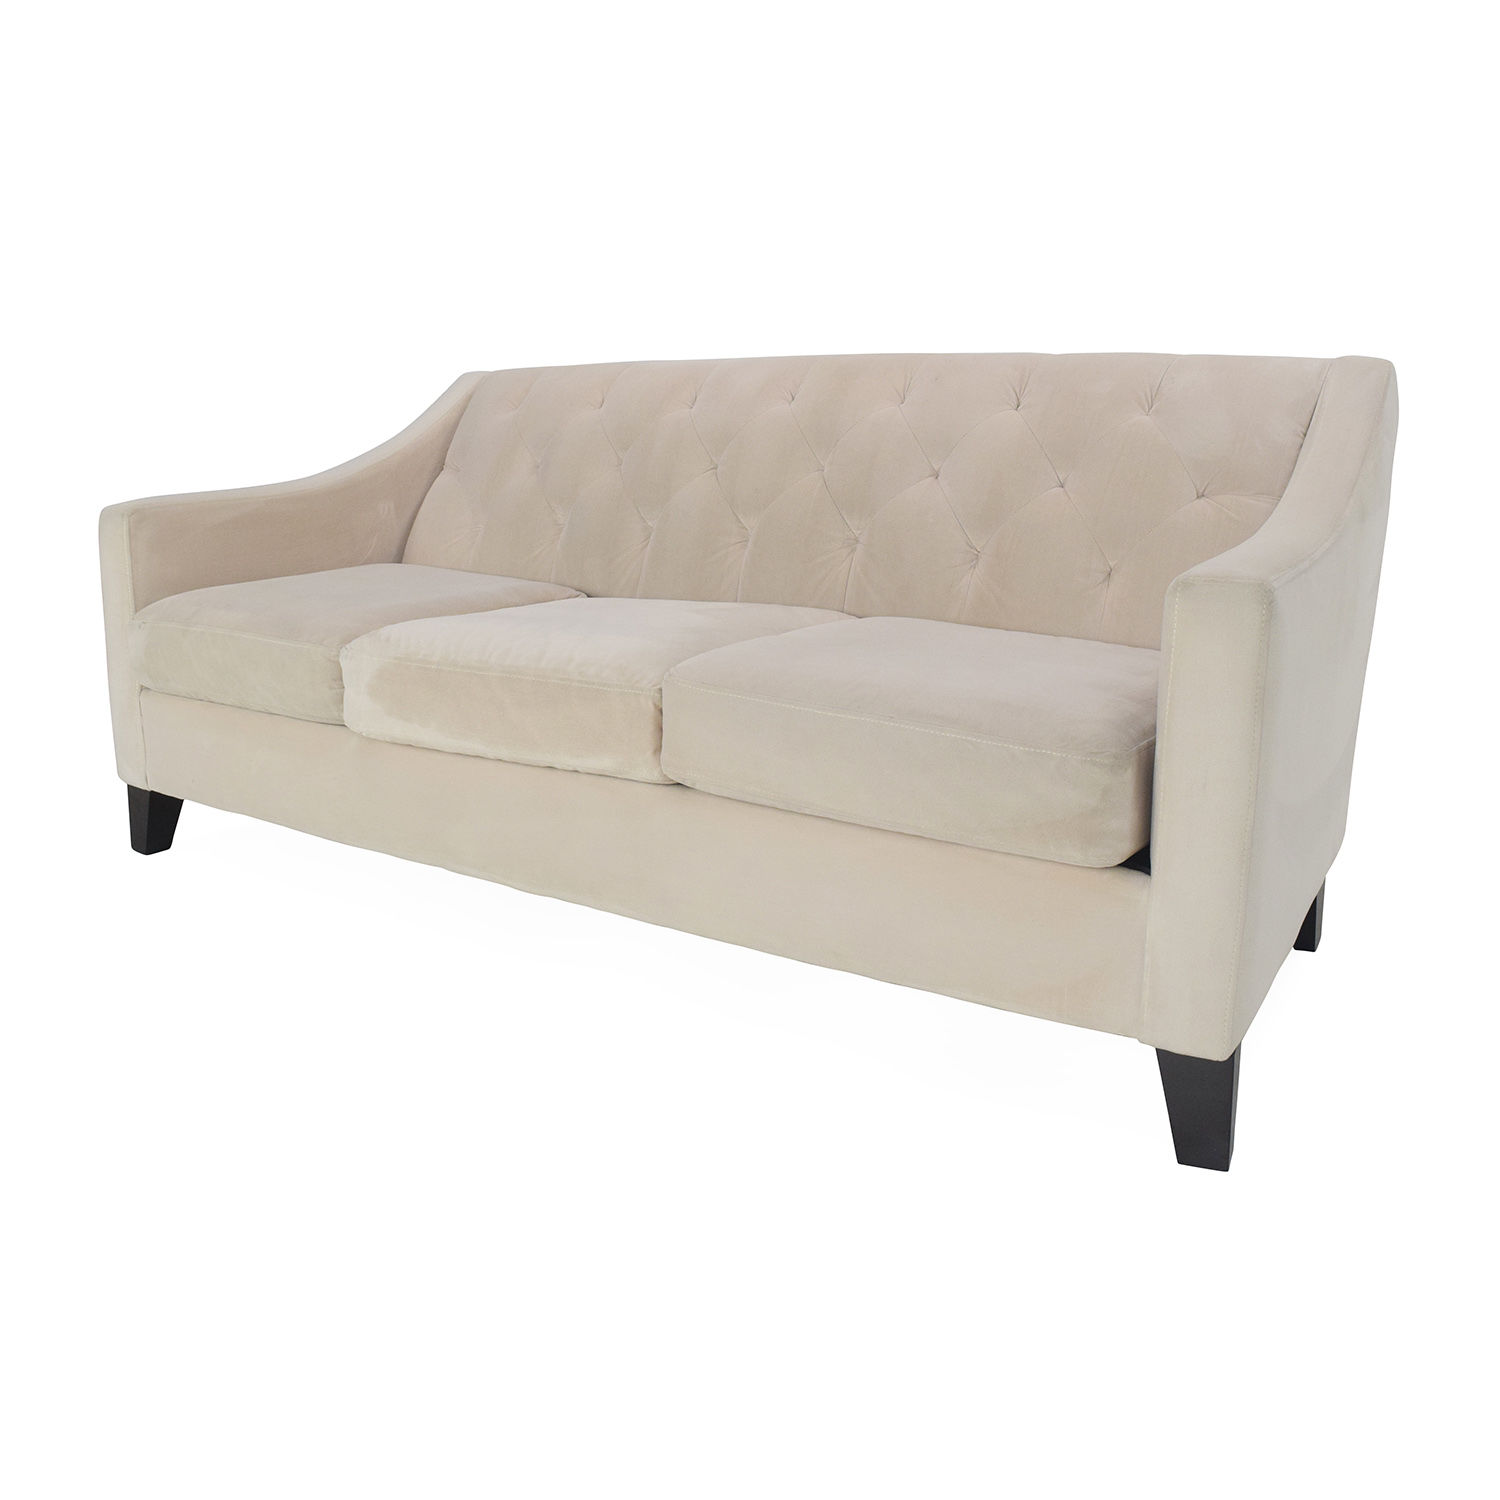 Modern Sofa Macys Sofas Macys Sofa Bed Sectional Sofa Pull Out Bed